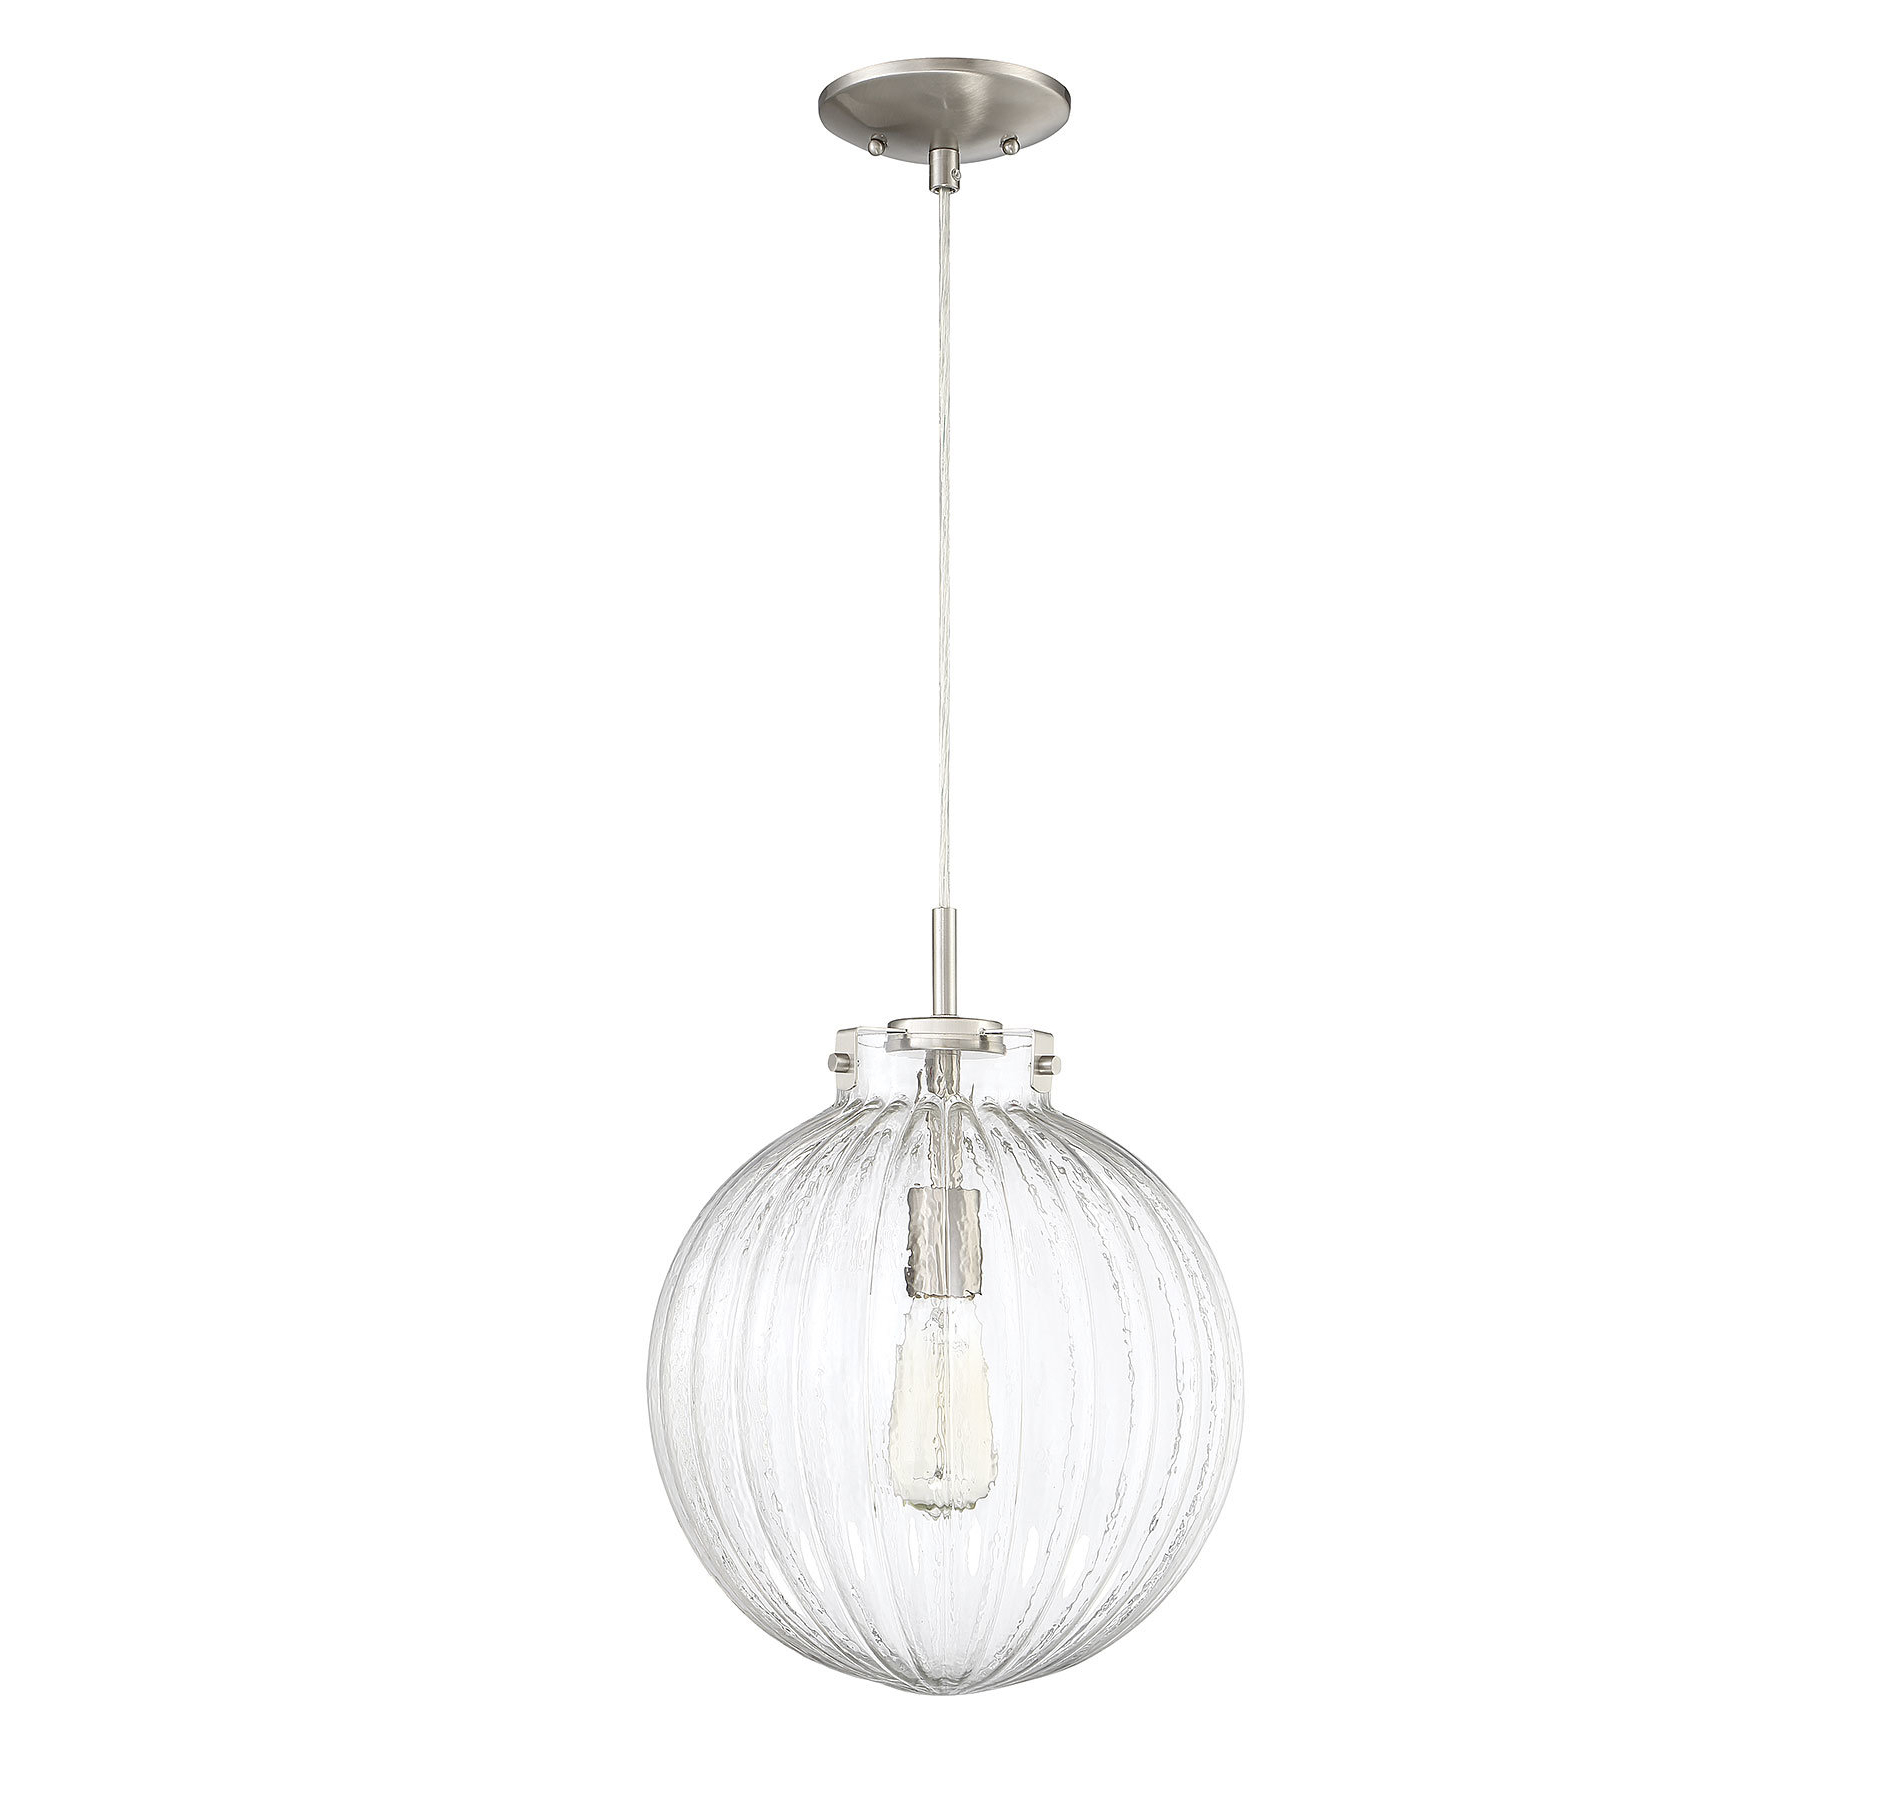 Newest Bundy 1 Light Single Globe Pendants Within Nevels 1 Light Single Globe Pendant (View 16 of 20)